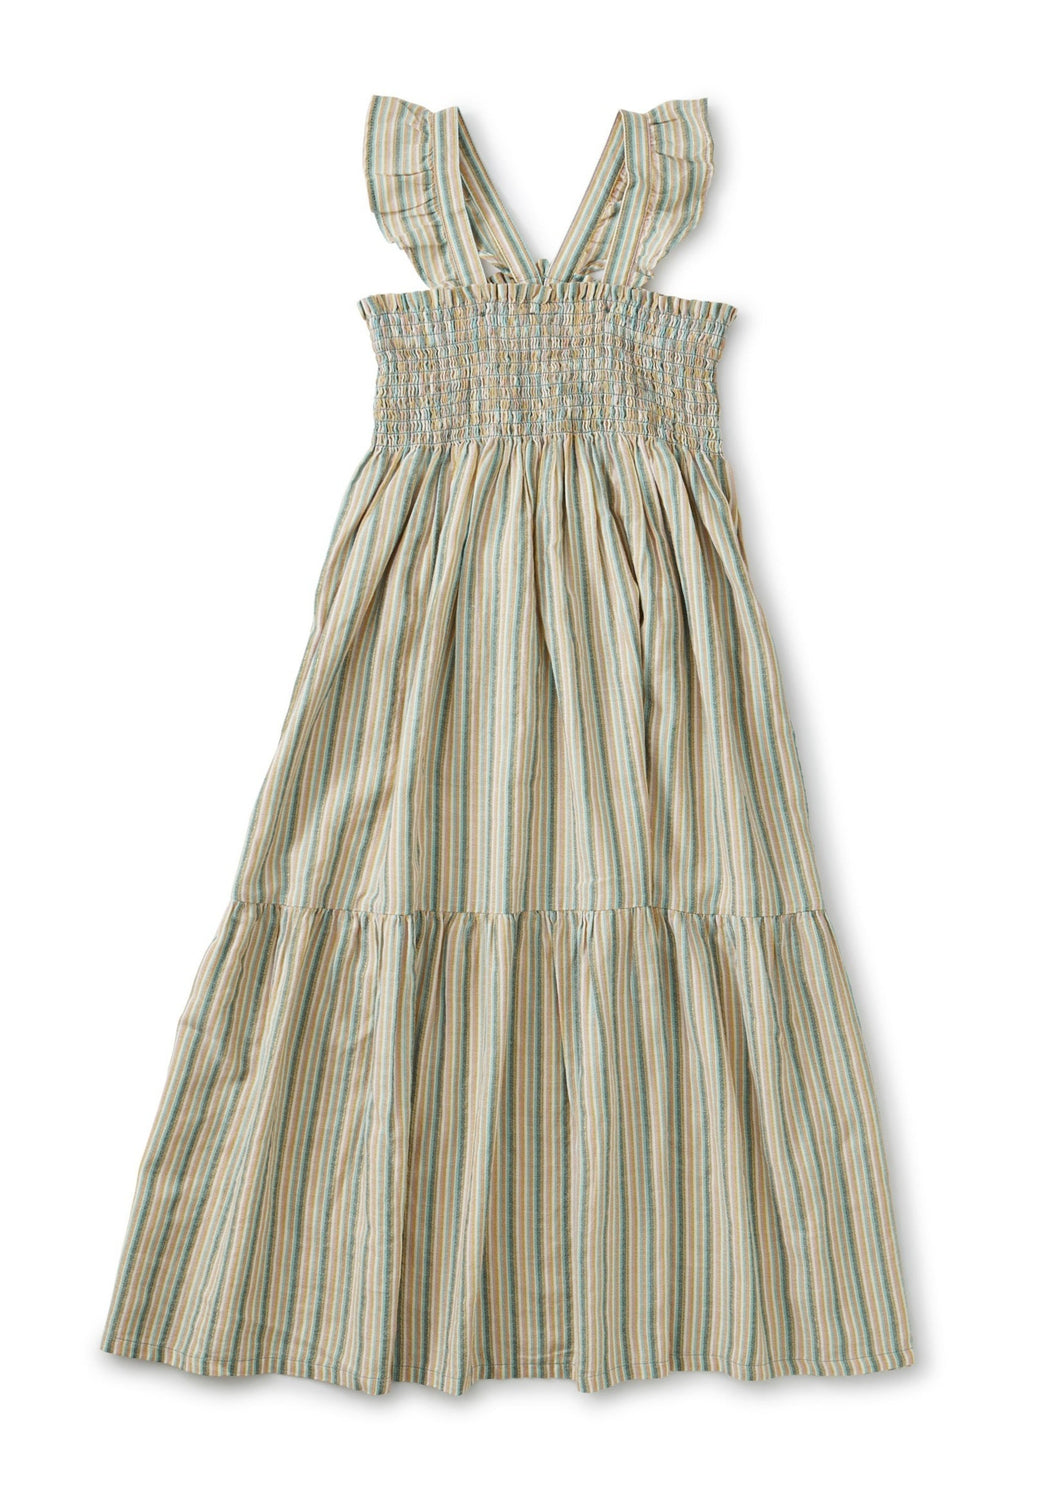 Tea Collection Ruffle Strap Midi Dress - Marsh - Bloom Kids Collection - Tea Collection